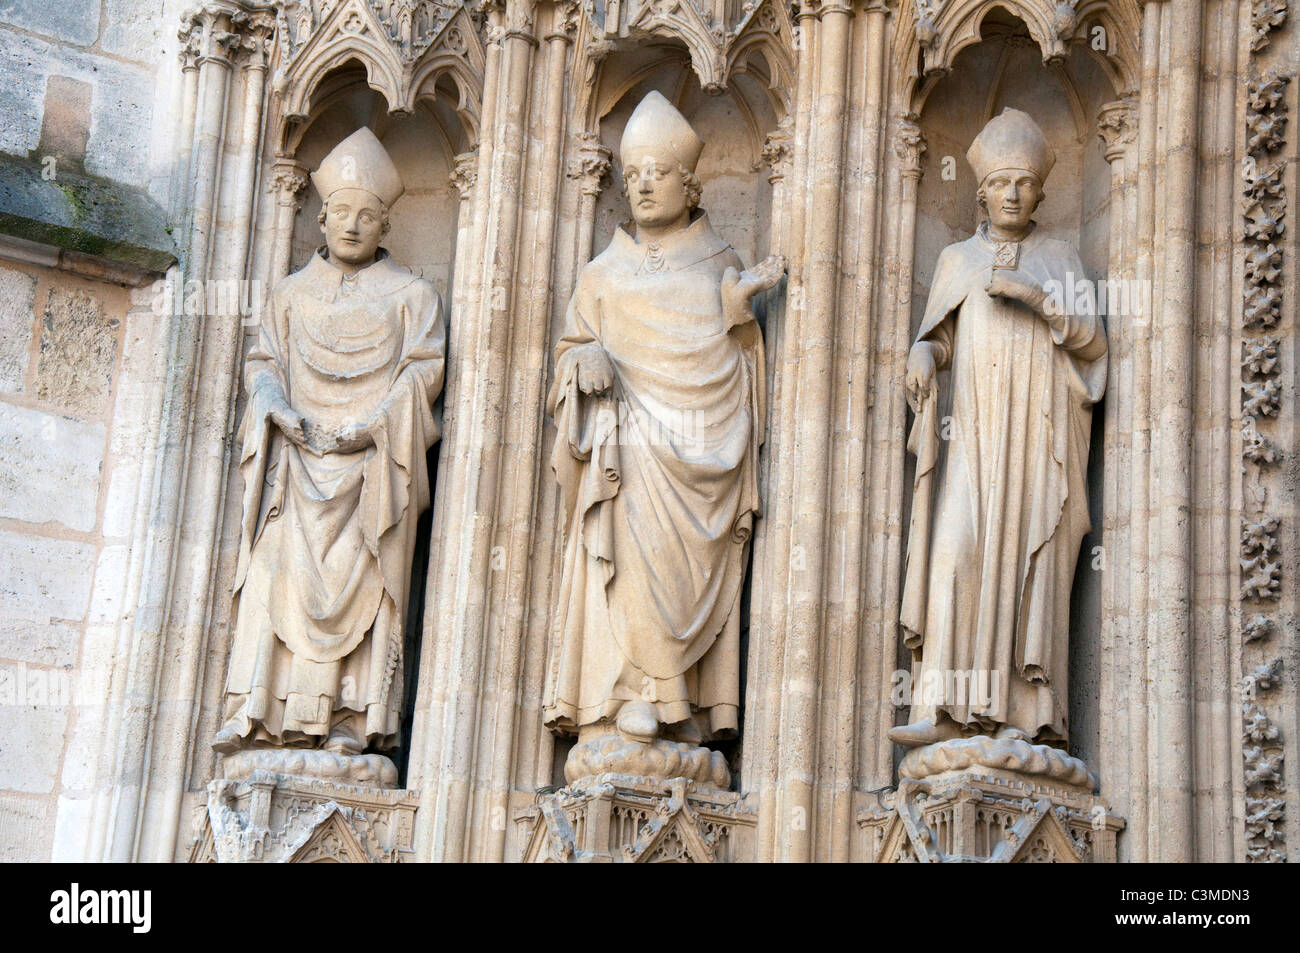 Statues on the Cathedral Saint Andre in the City of Bordeaux, France Europe EU - Stock Image